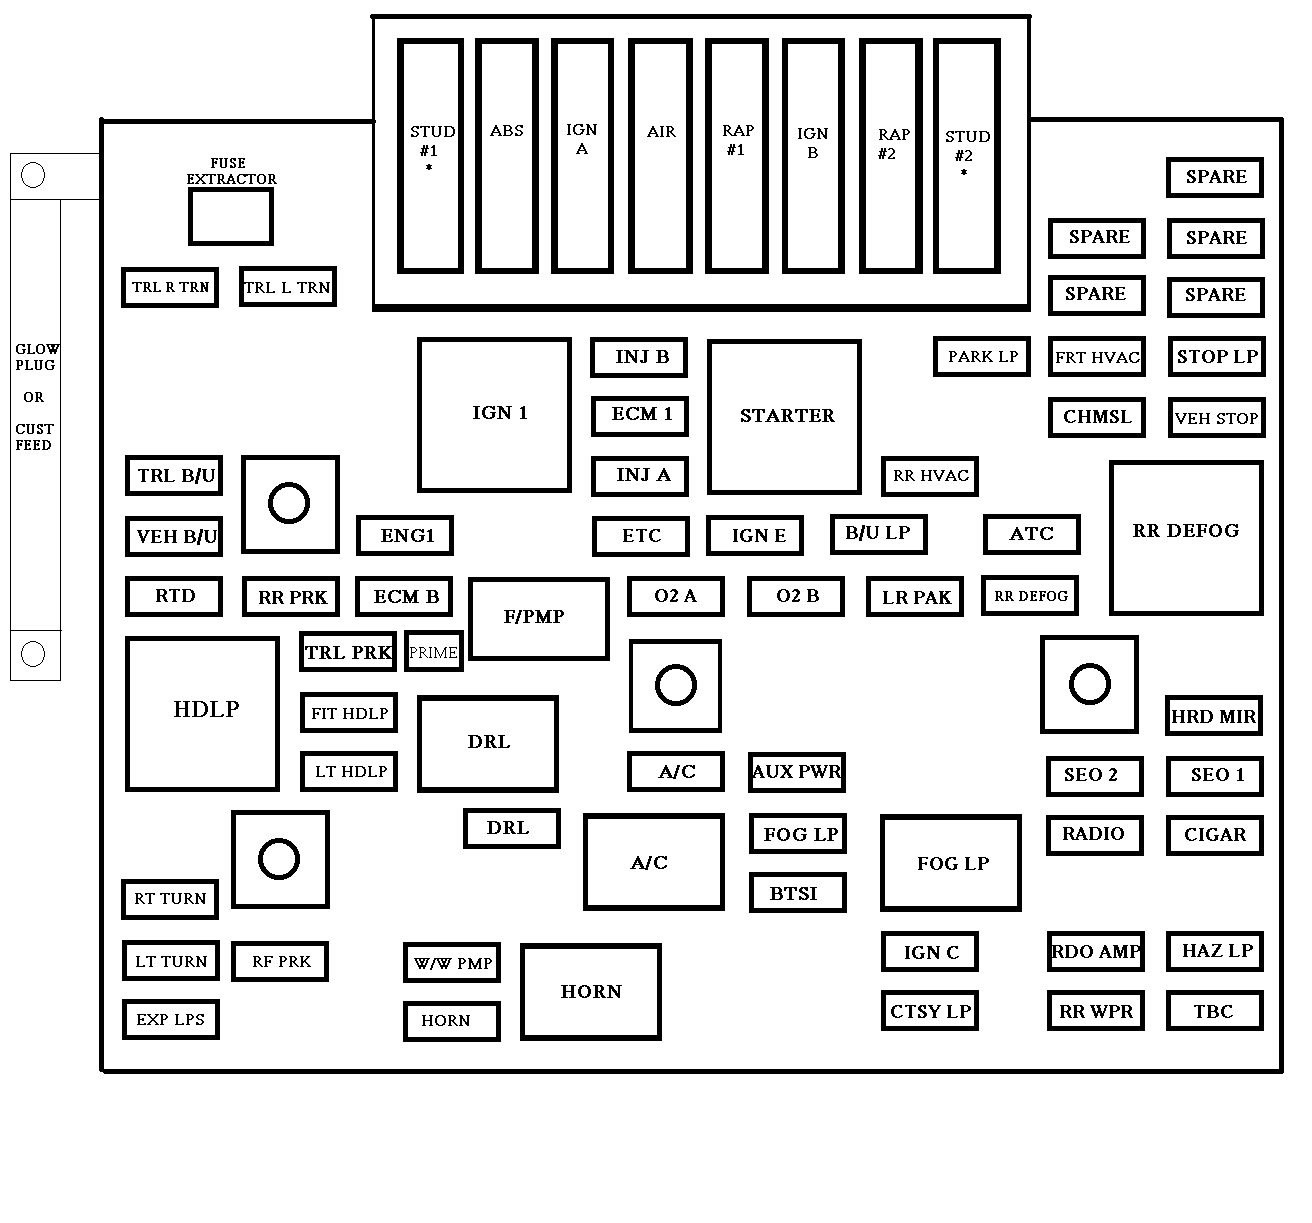 Chevrolet Avalanche Gmt 800 2001 2006 Fuse Box Diagram on 2006 chevy silverado power window fuse